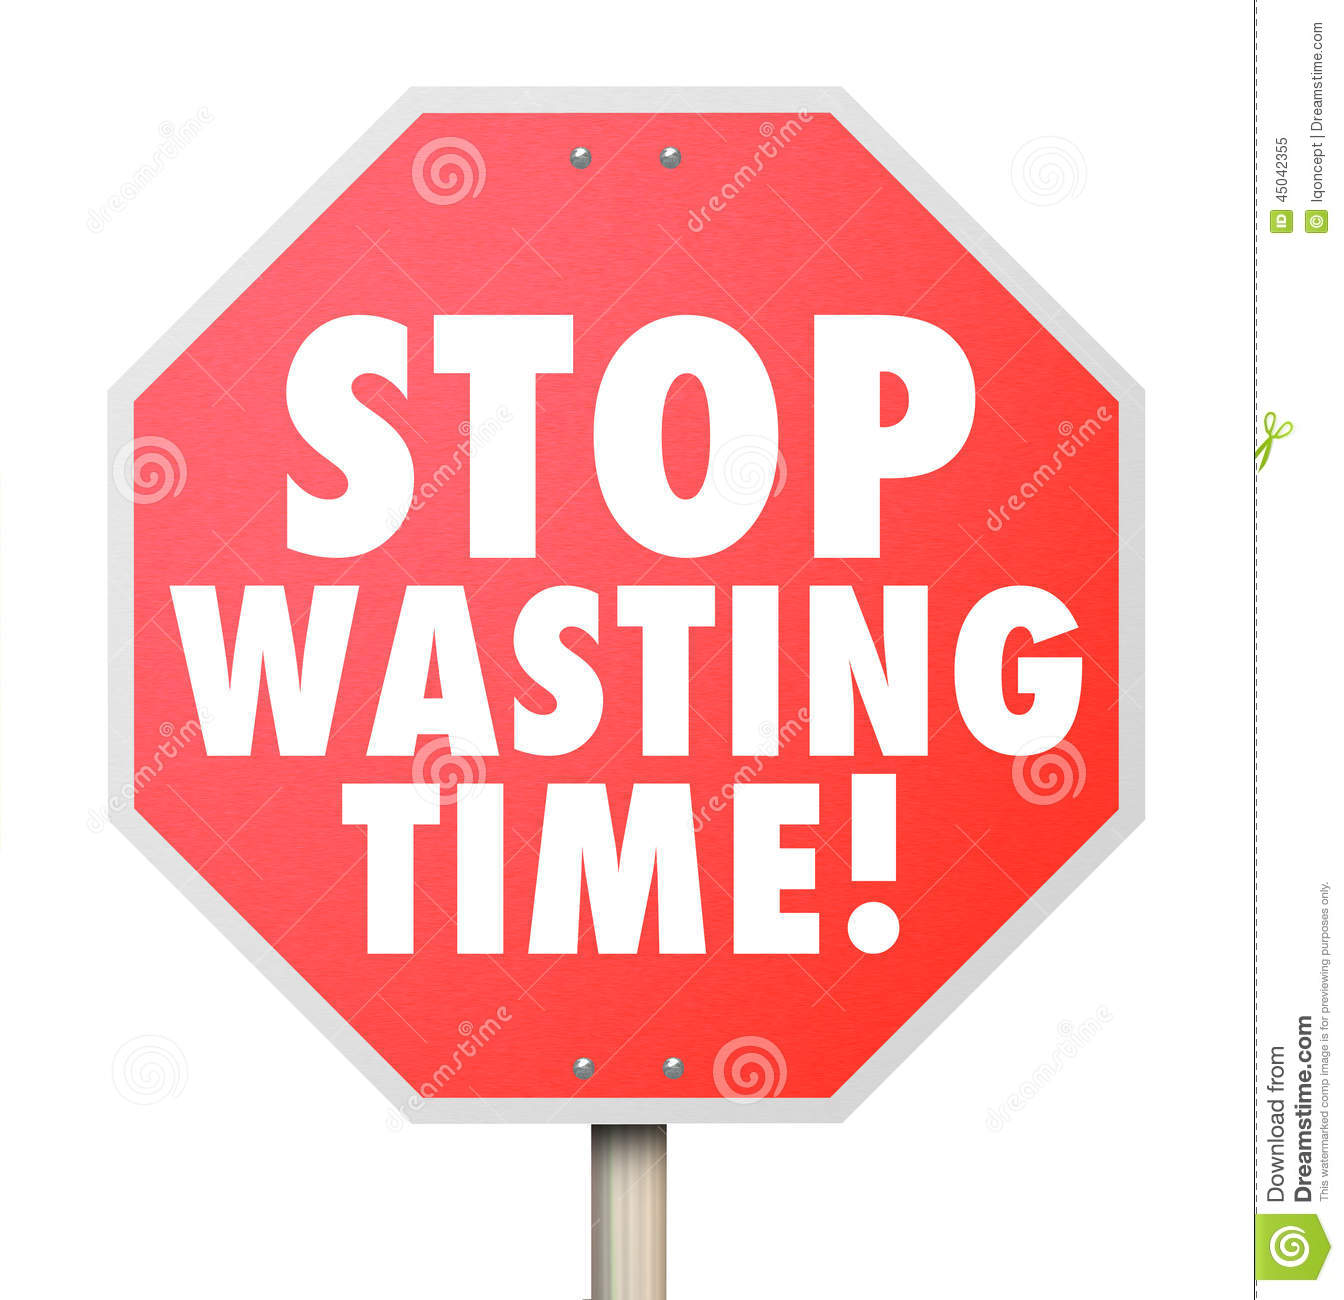 Stop Wasting Time Management Inefficient-Stop Wasting Time Management Inefficient Use Of Hours Minutes Da Stock-7